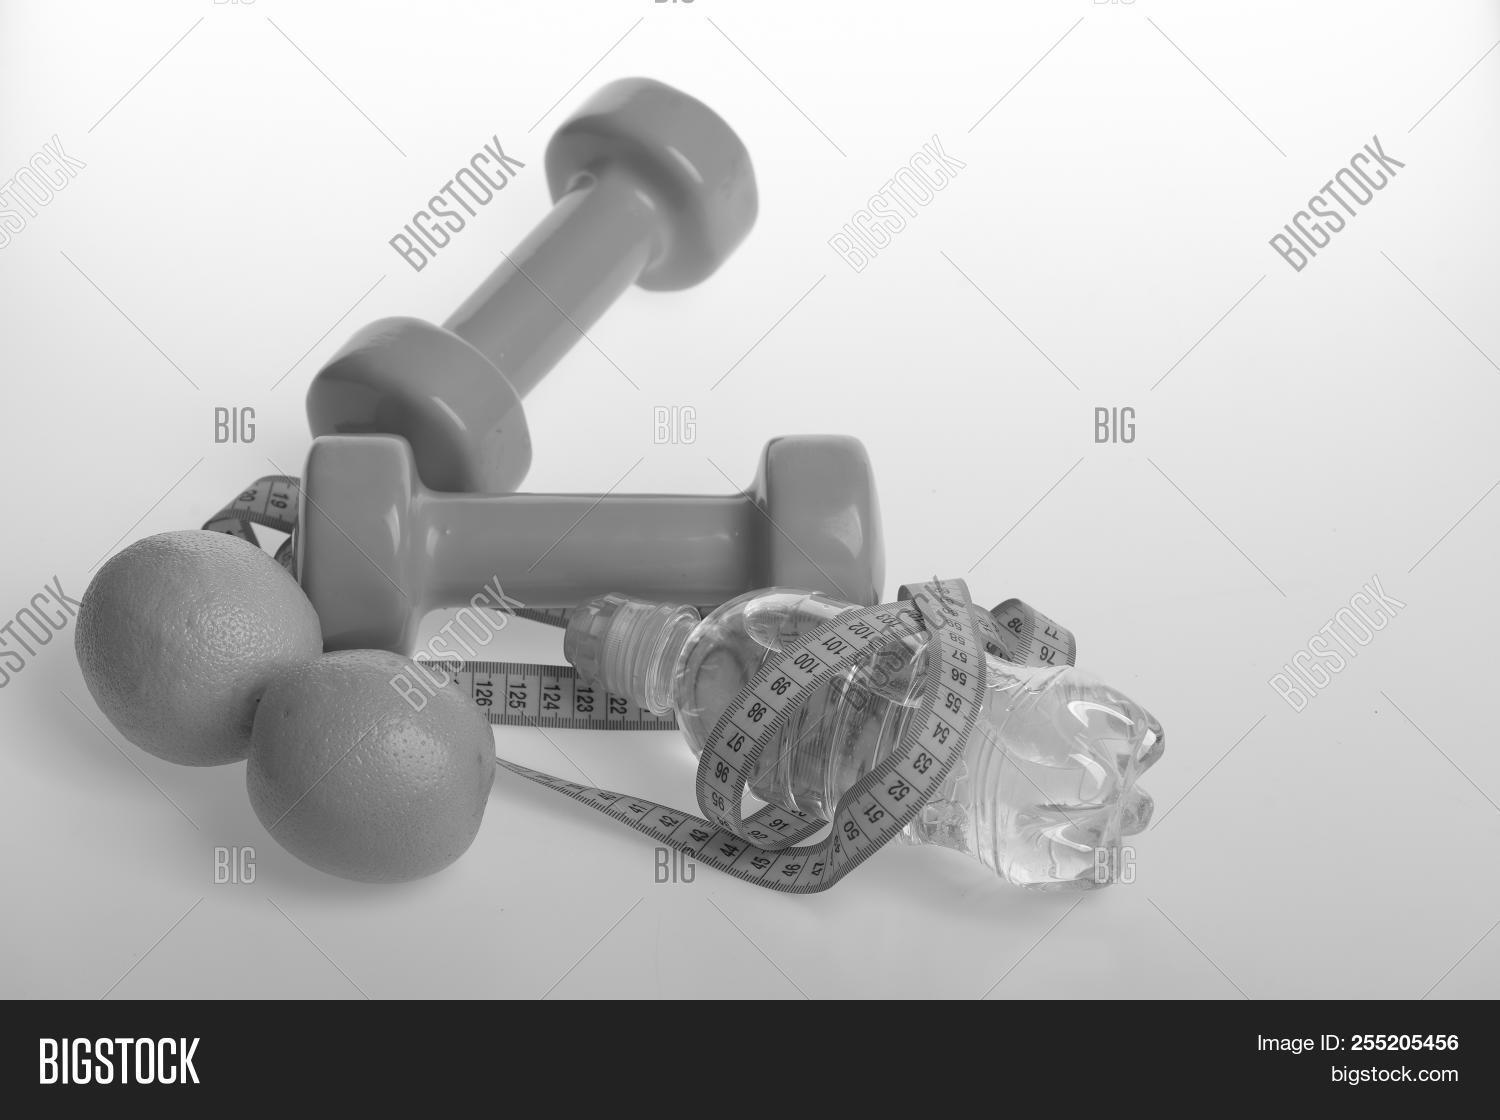 aerobics,athletic,background,barbell,bottle,citrus,color,concept,copy,diet,dieting,dumbbell,equipment,exercise,fit,fitness,flexible,fruit,green,gym,health,healthy,juicy,length,lifestyle,liquid,loss,measure,measurement,metering,nutrition,orange,plastic,refresh,regime,shape,slim,space,sport,sportive,tape,training,water,weight,white